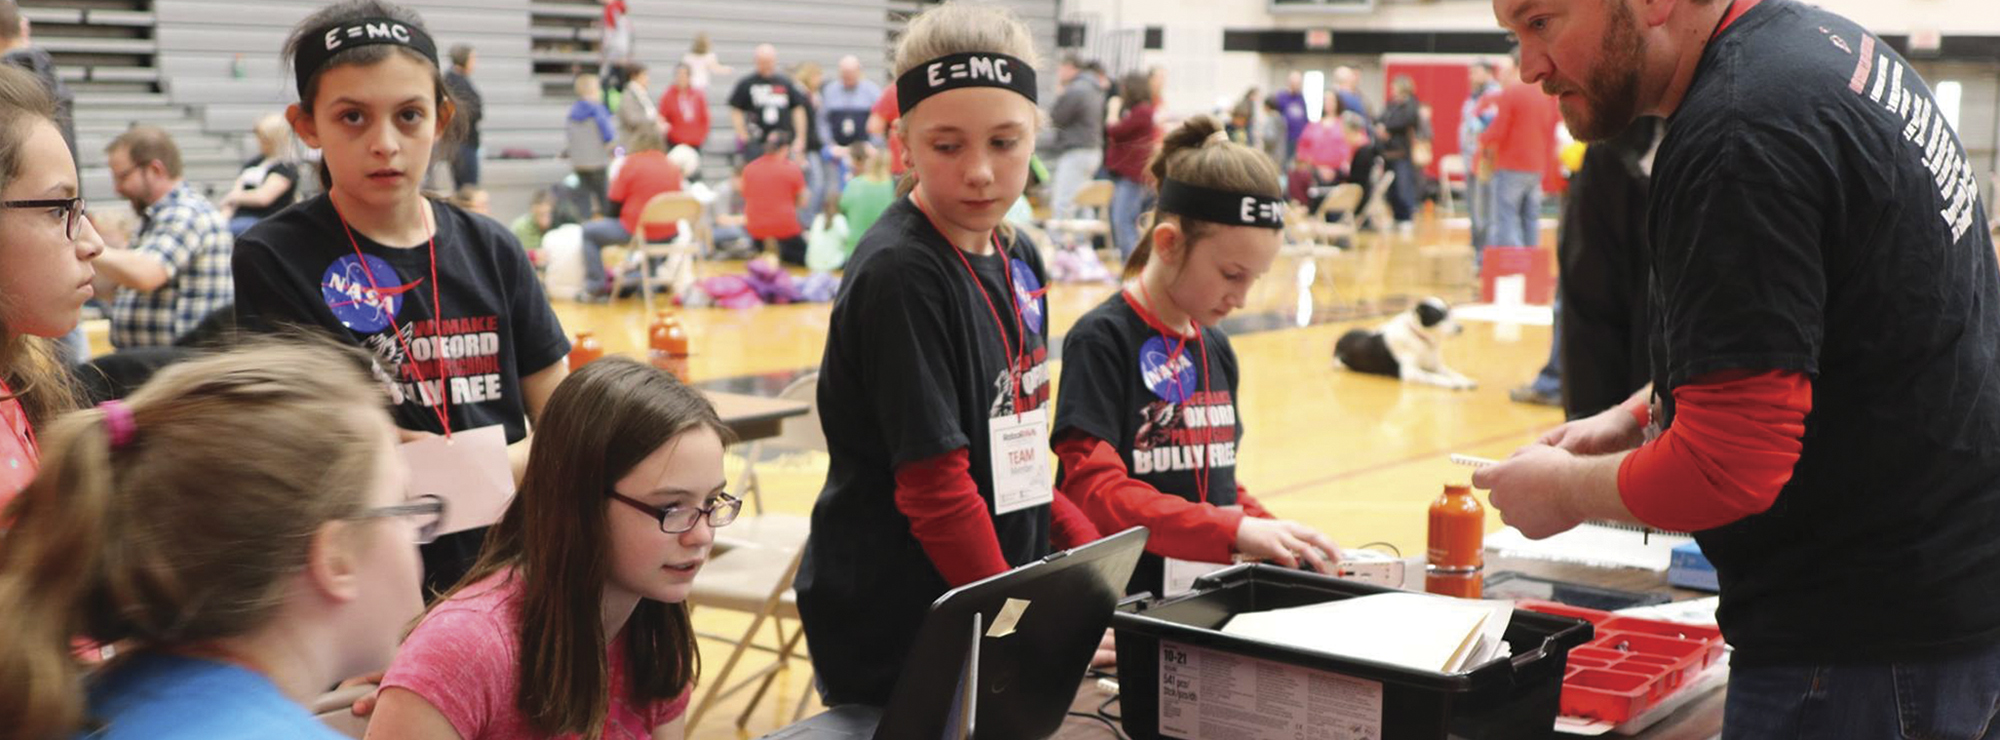 School students in a gymnasium participating in a technology or science fair event.